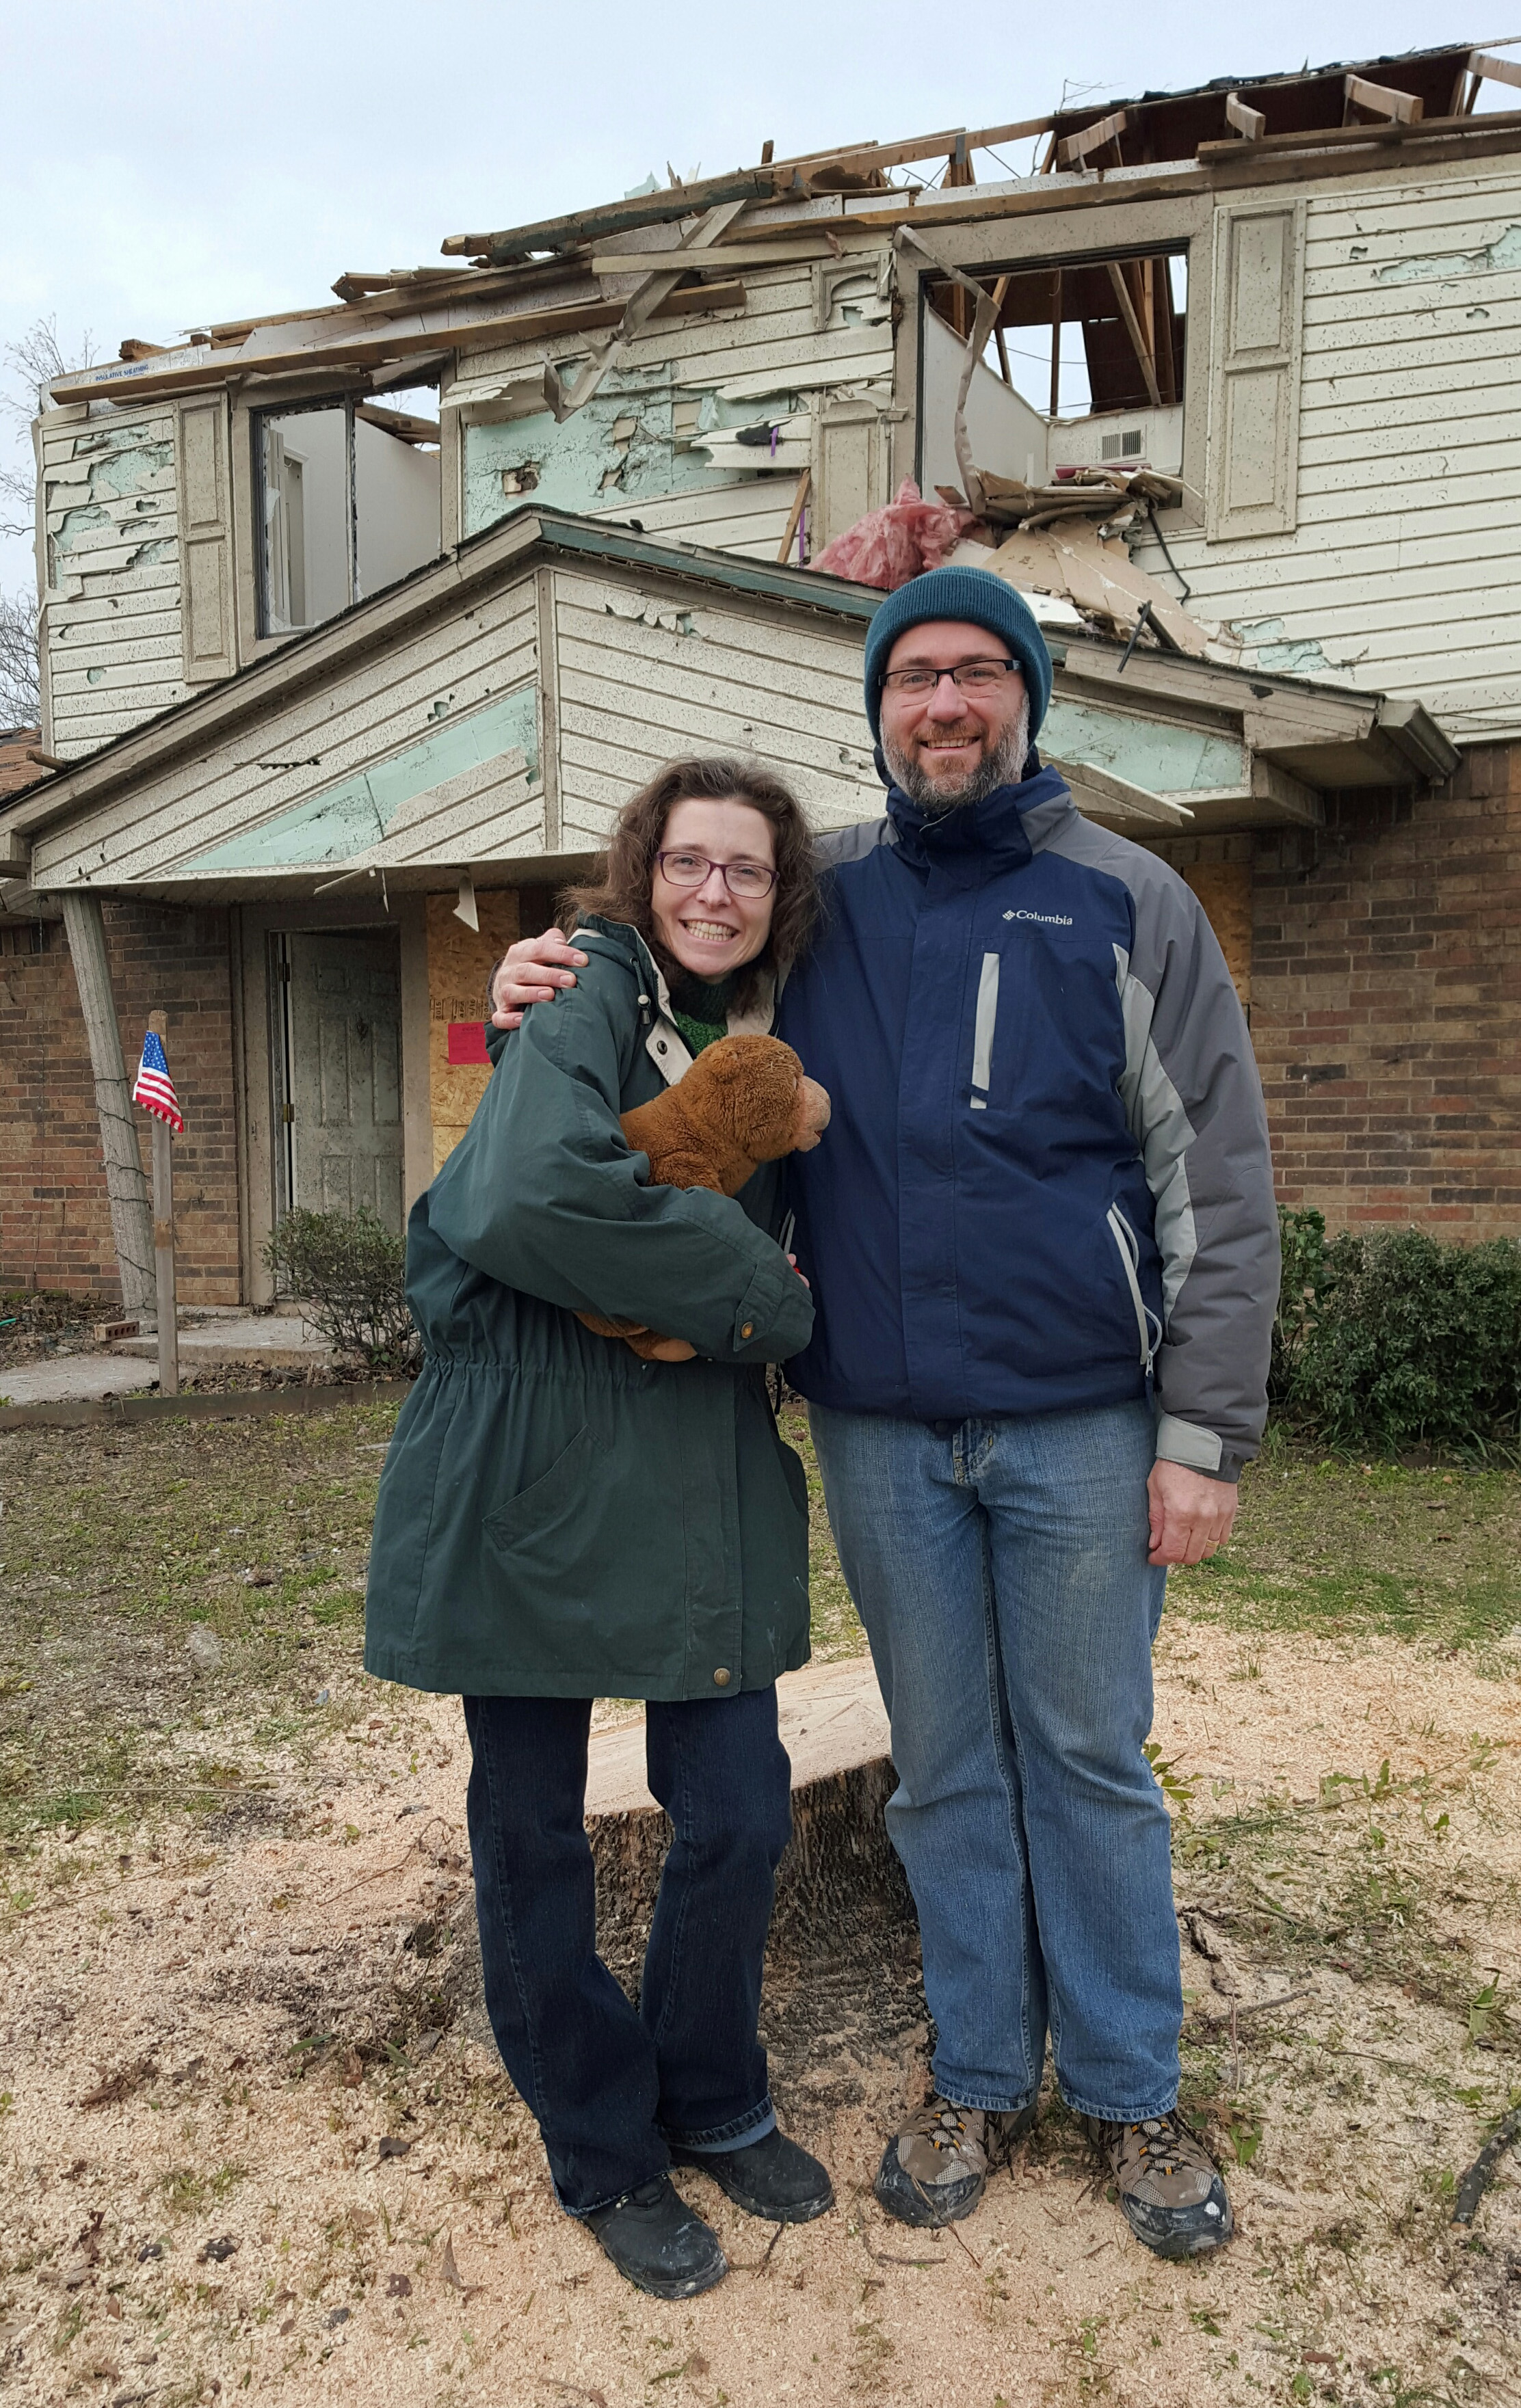 The Rev. Natalya Cherry and her husband, Paul, had their home destroyed by the Dec. 26 tornado in Rowlett, Texas. But finding Bo Bear, the favorite stuffed toy of their 8-year-old son, Gregory, raised their spirits. Photo by the Rev. Jan Davis